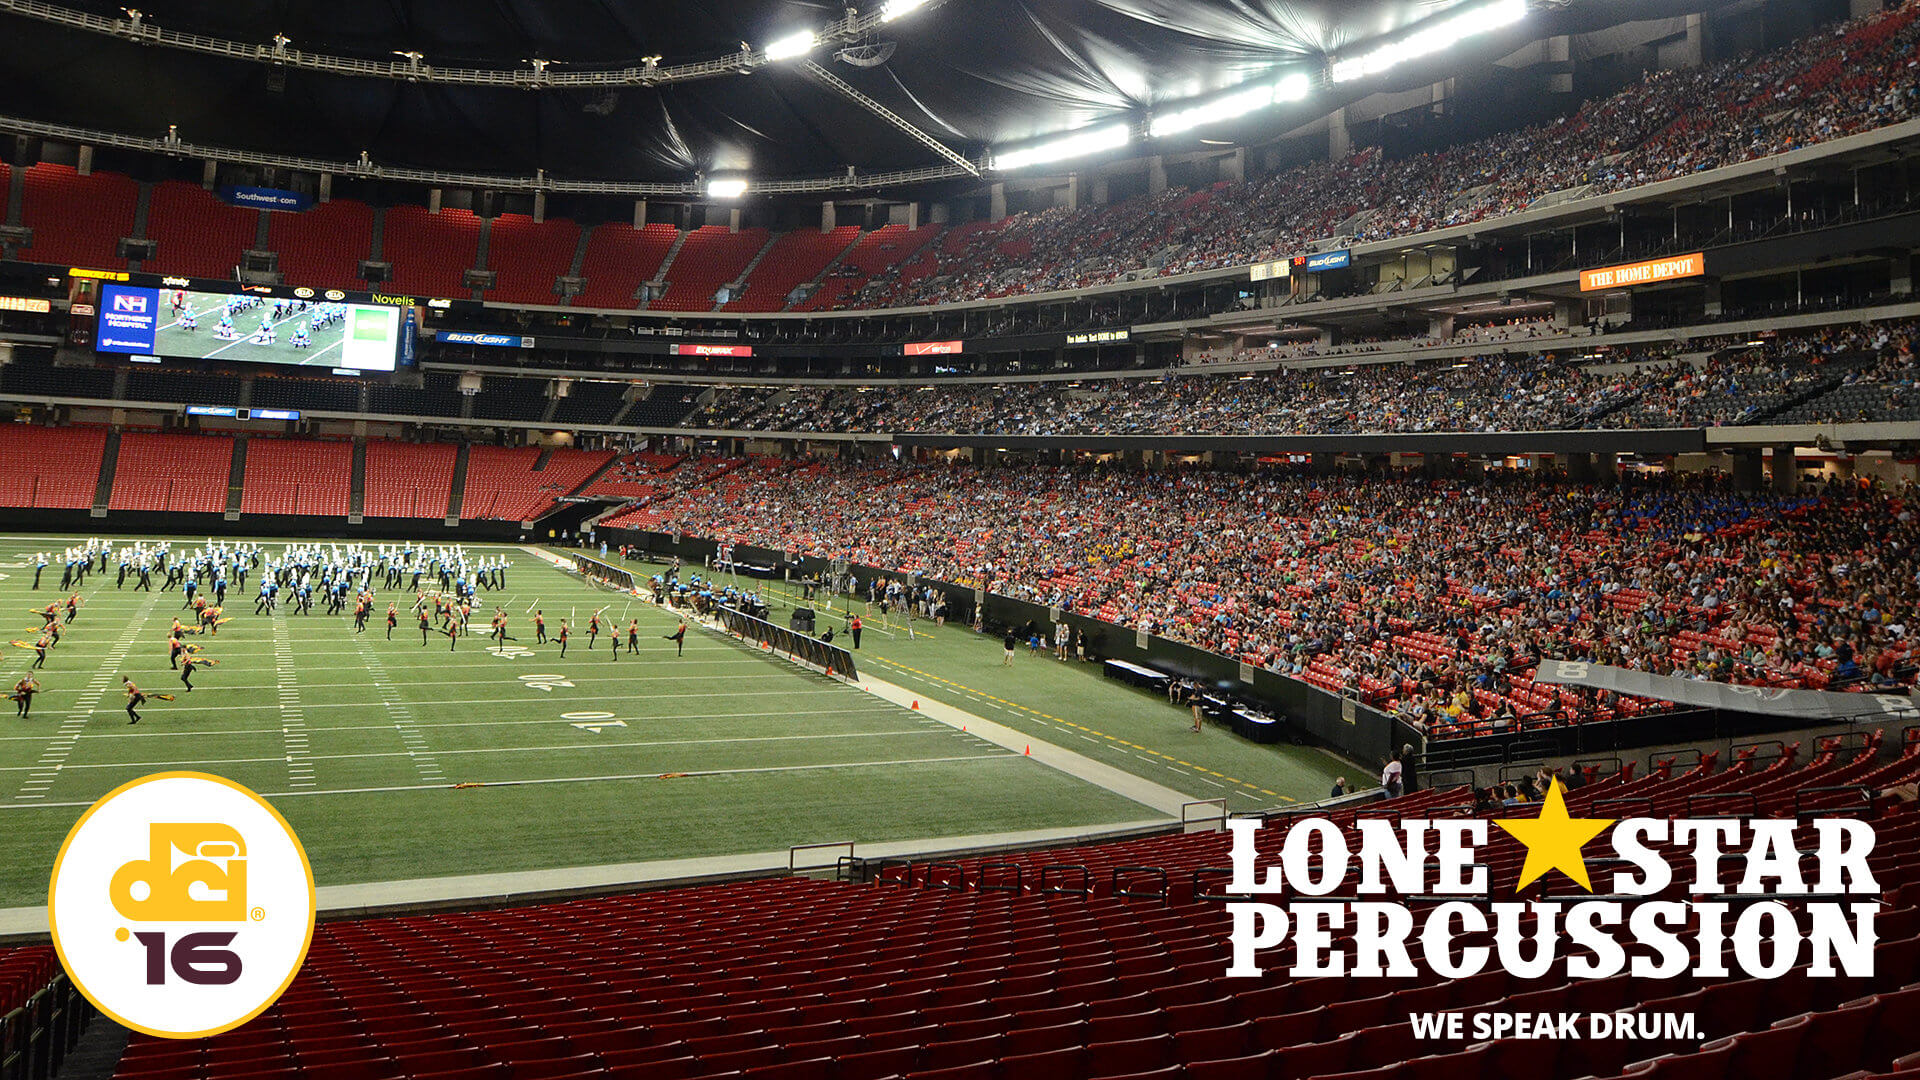 Lone Star Percussion signs as presenting sponsor of DCI Southeastern Championship